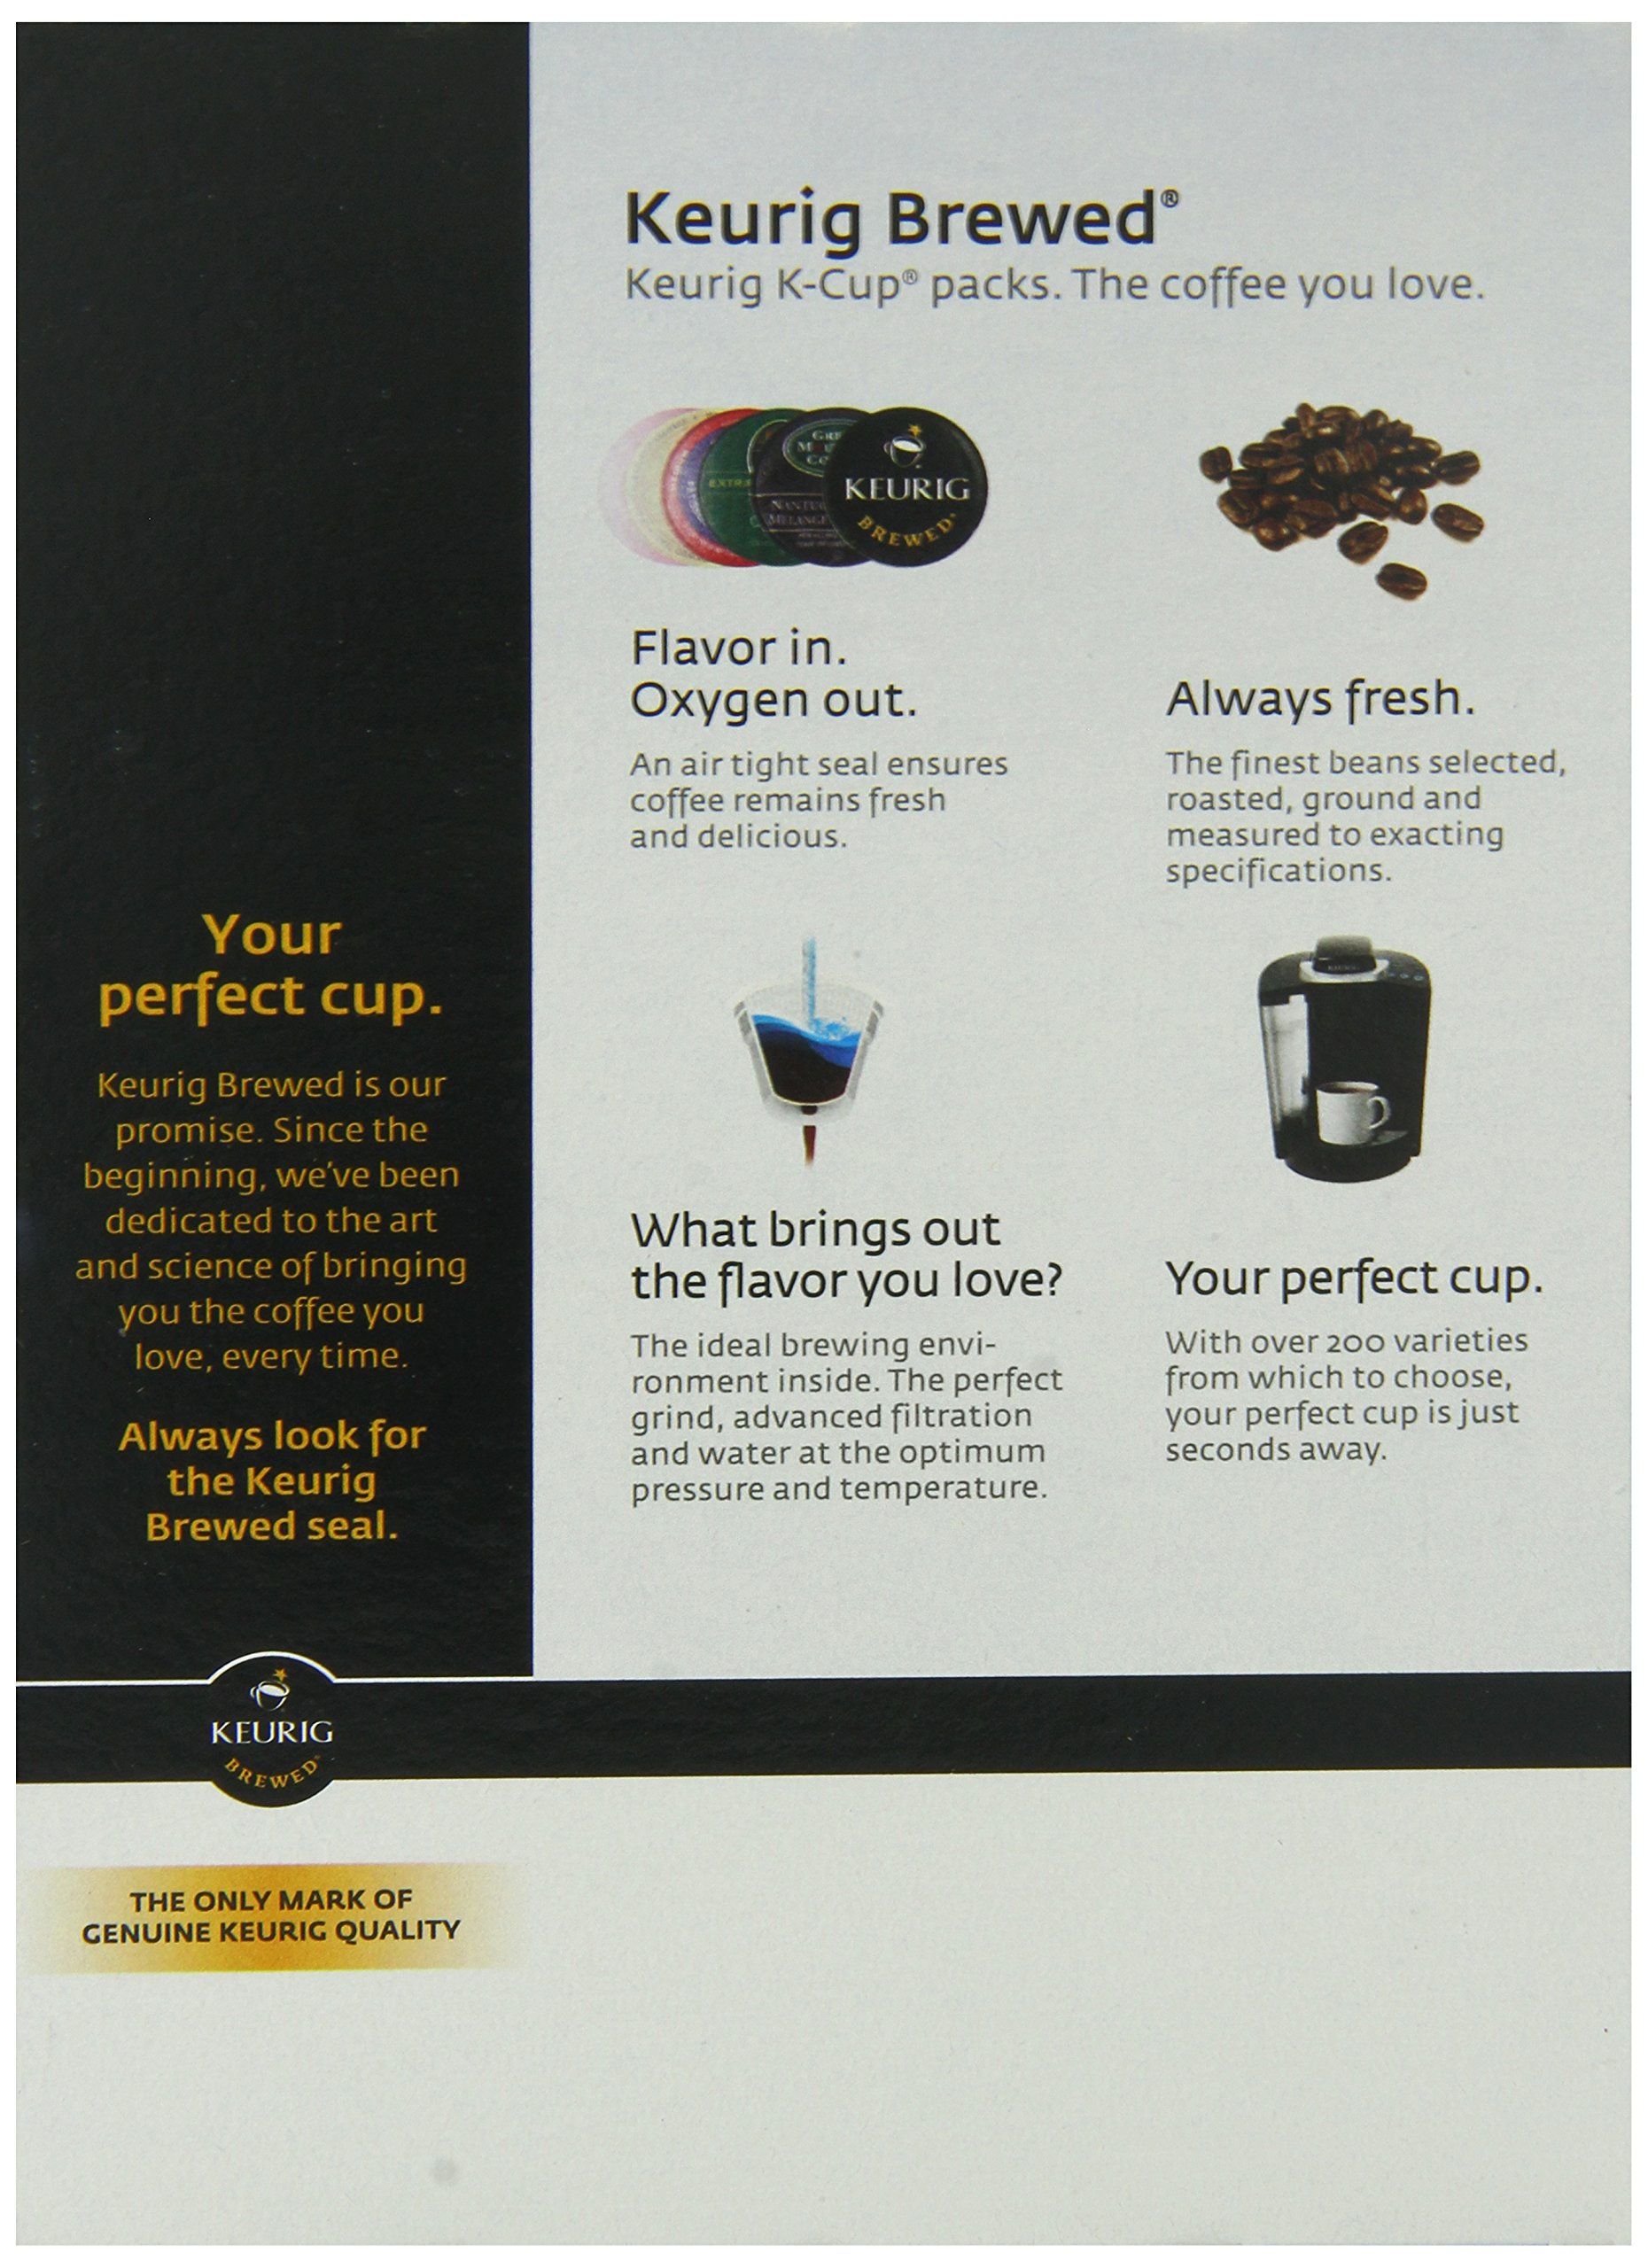 Caribou Coffee Caribou Decaf Blend, K-Cups for Keurig Brewers, 96-Count by Caribou Coffee